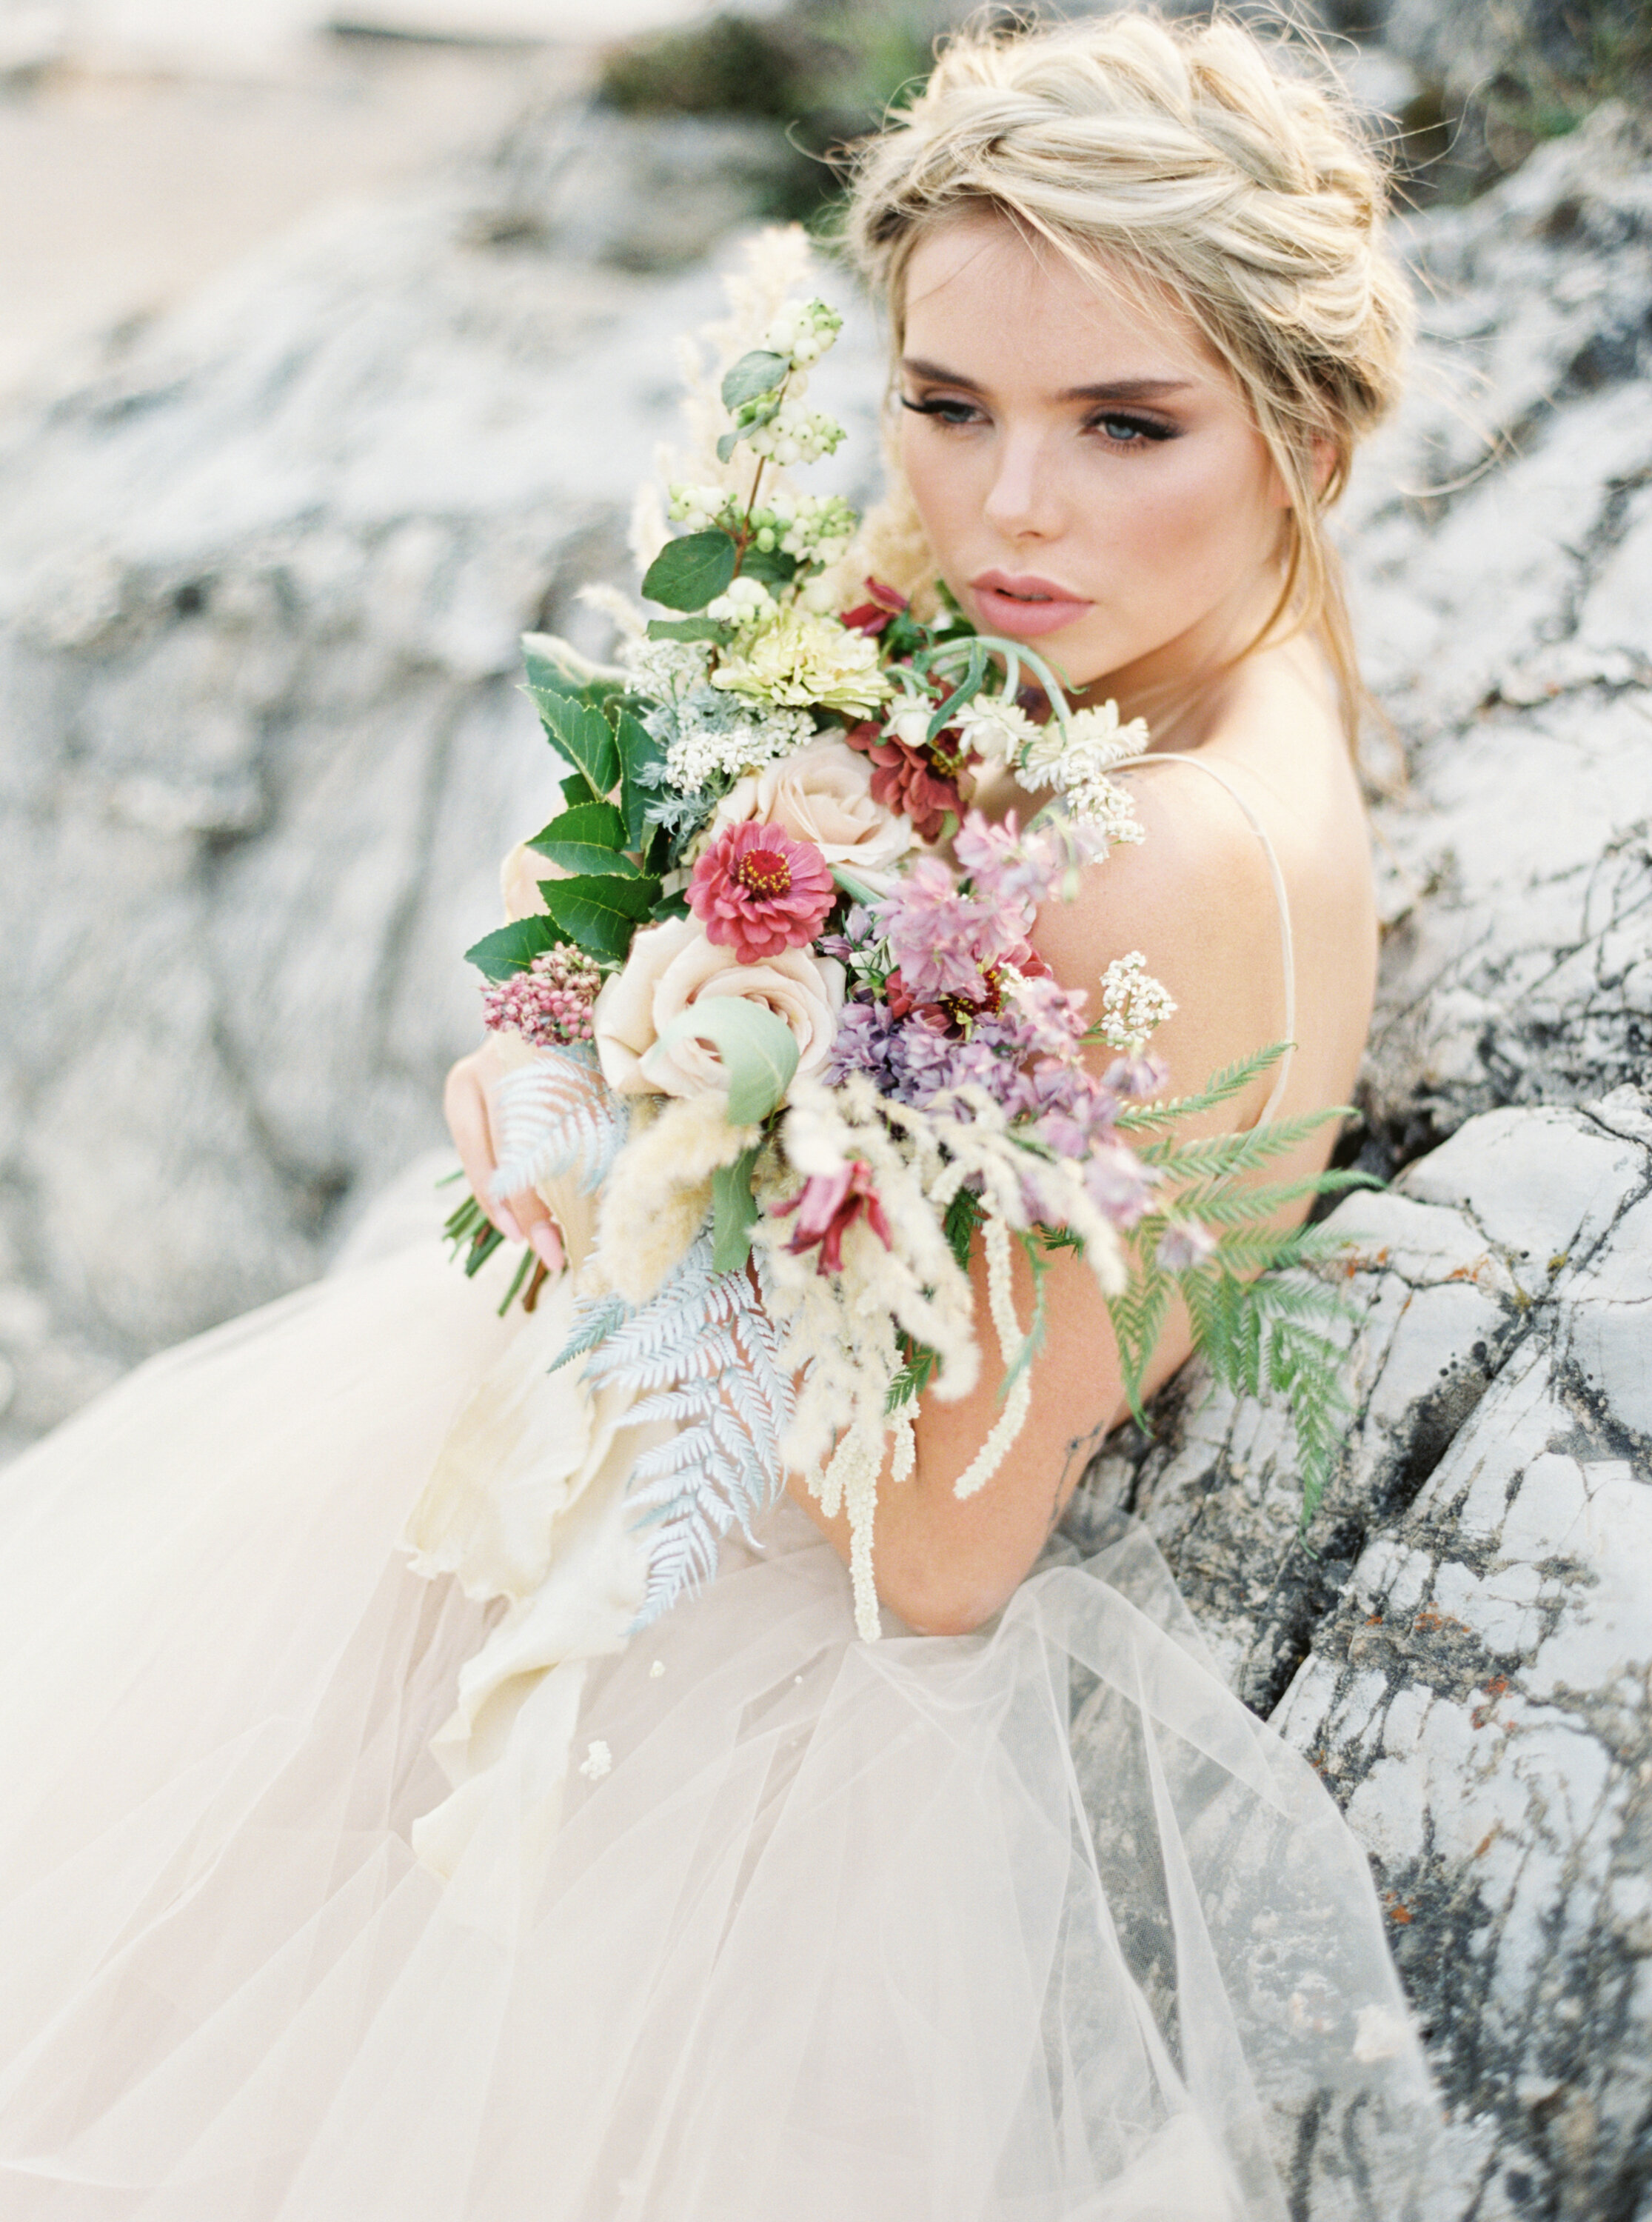 Blushing Banff Bridal Inspiration in the Rockies / Wedding Inspiration on the Bronte Bride Blog